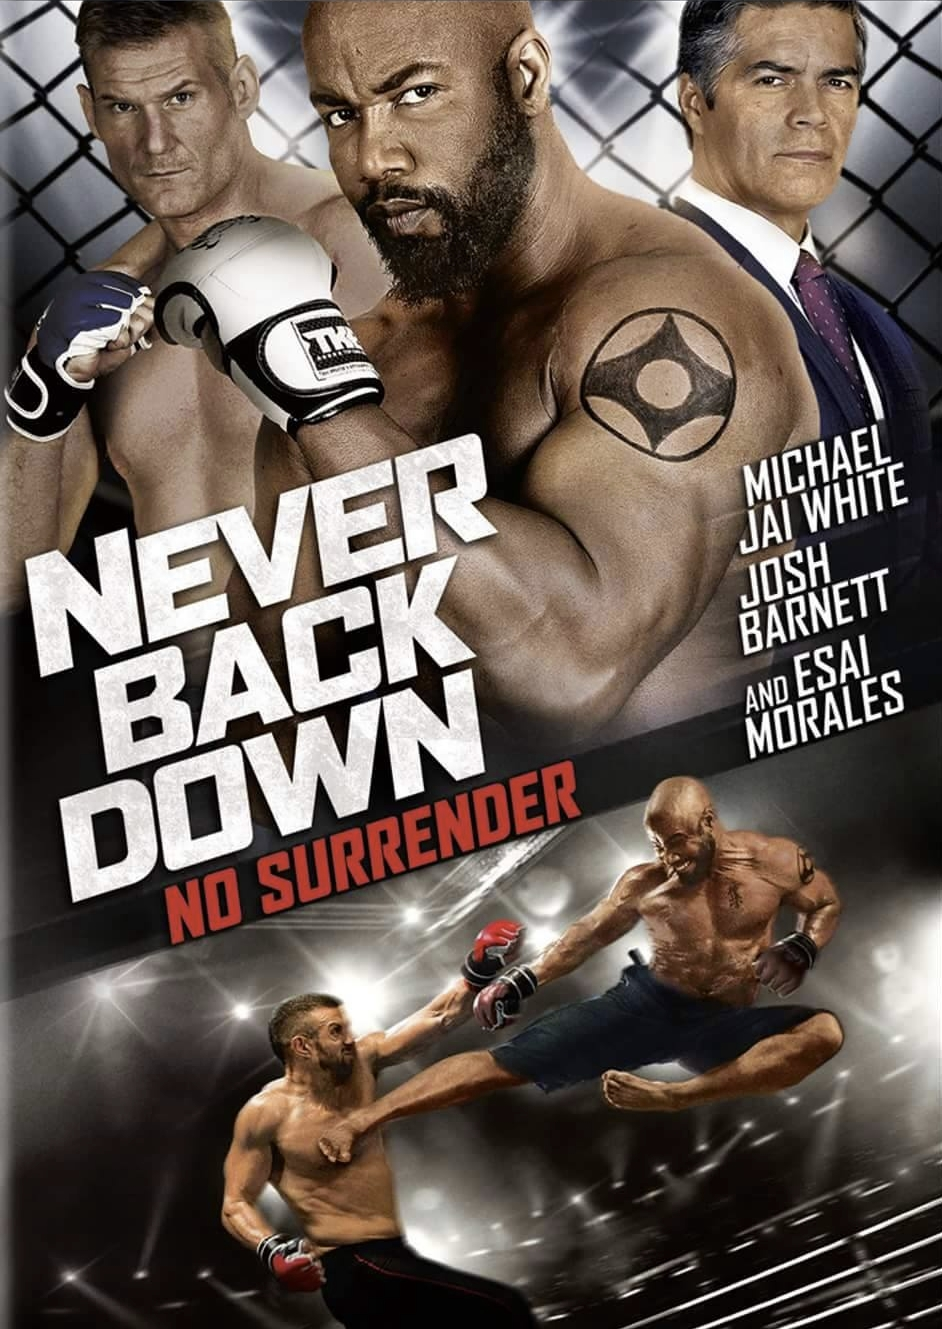 Never back down 3 full movie download